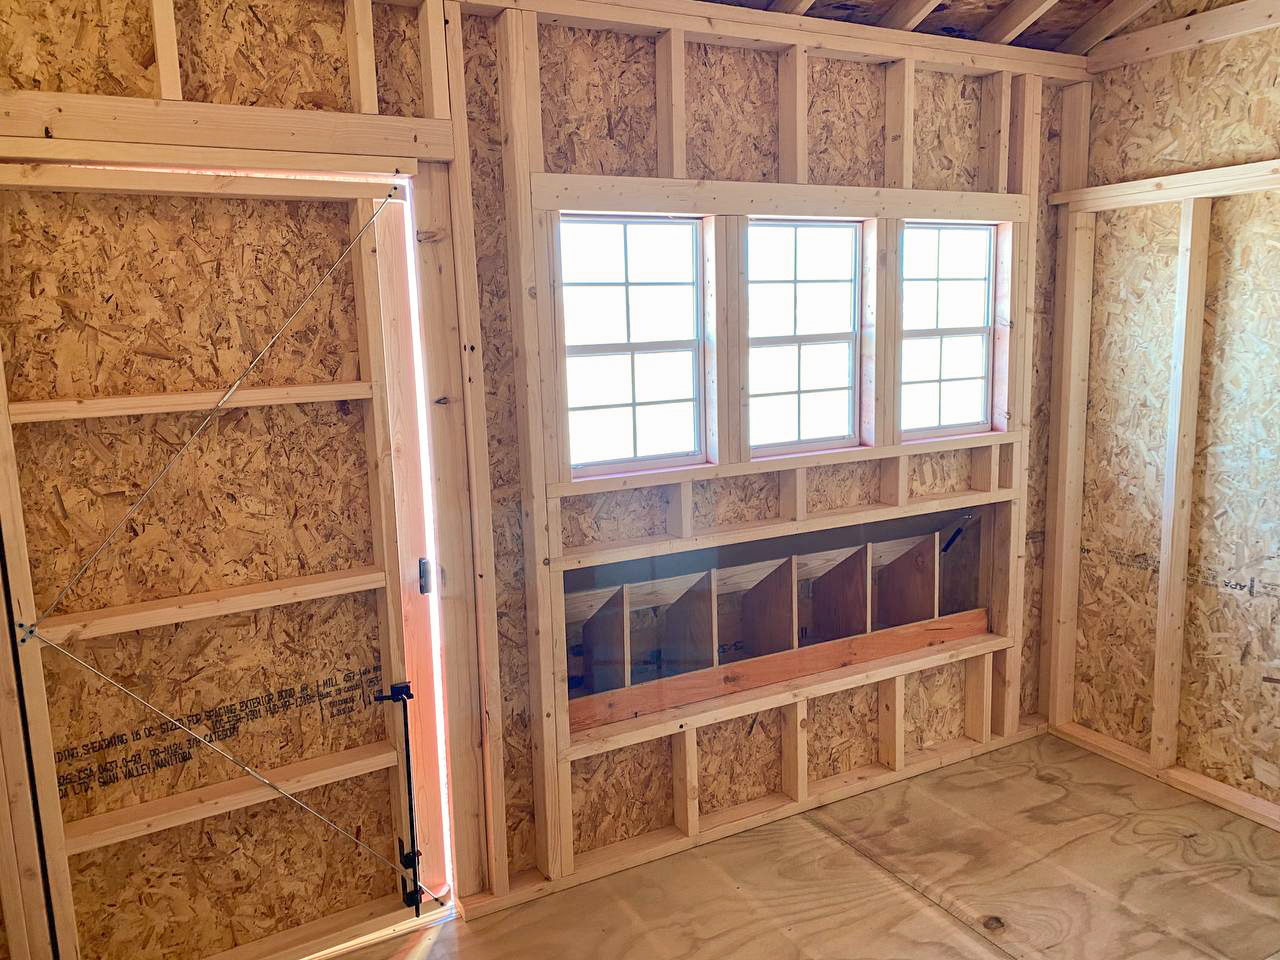 backyard chicken coop for sale in north dakota with nesting boxes